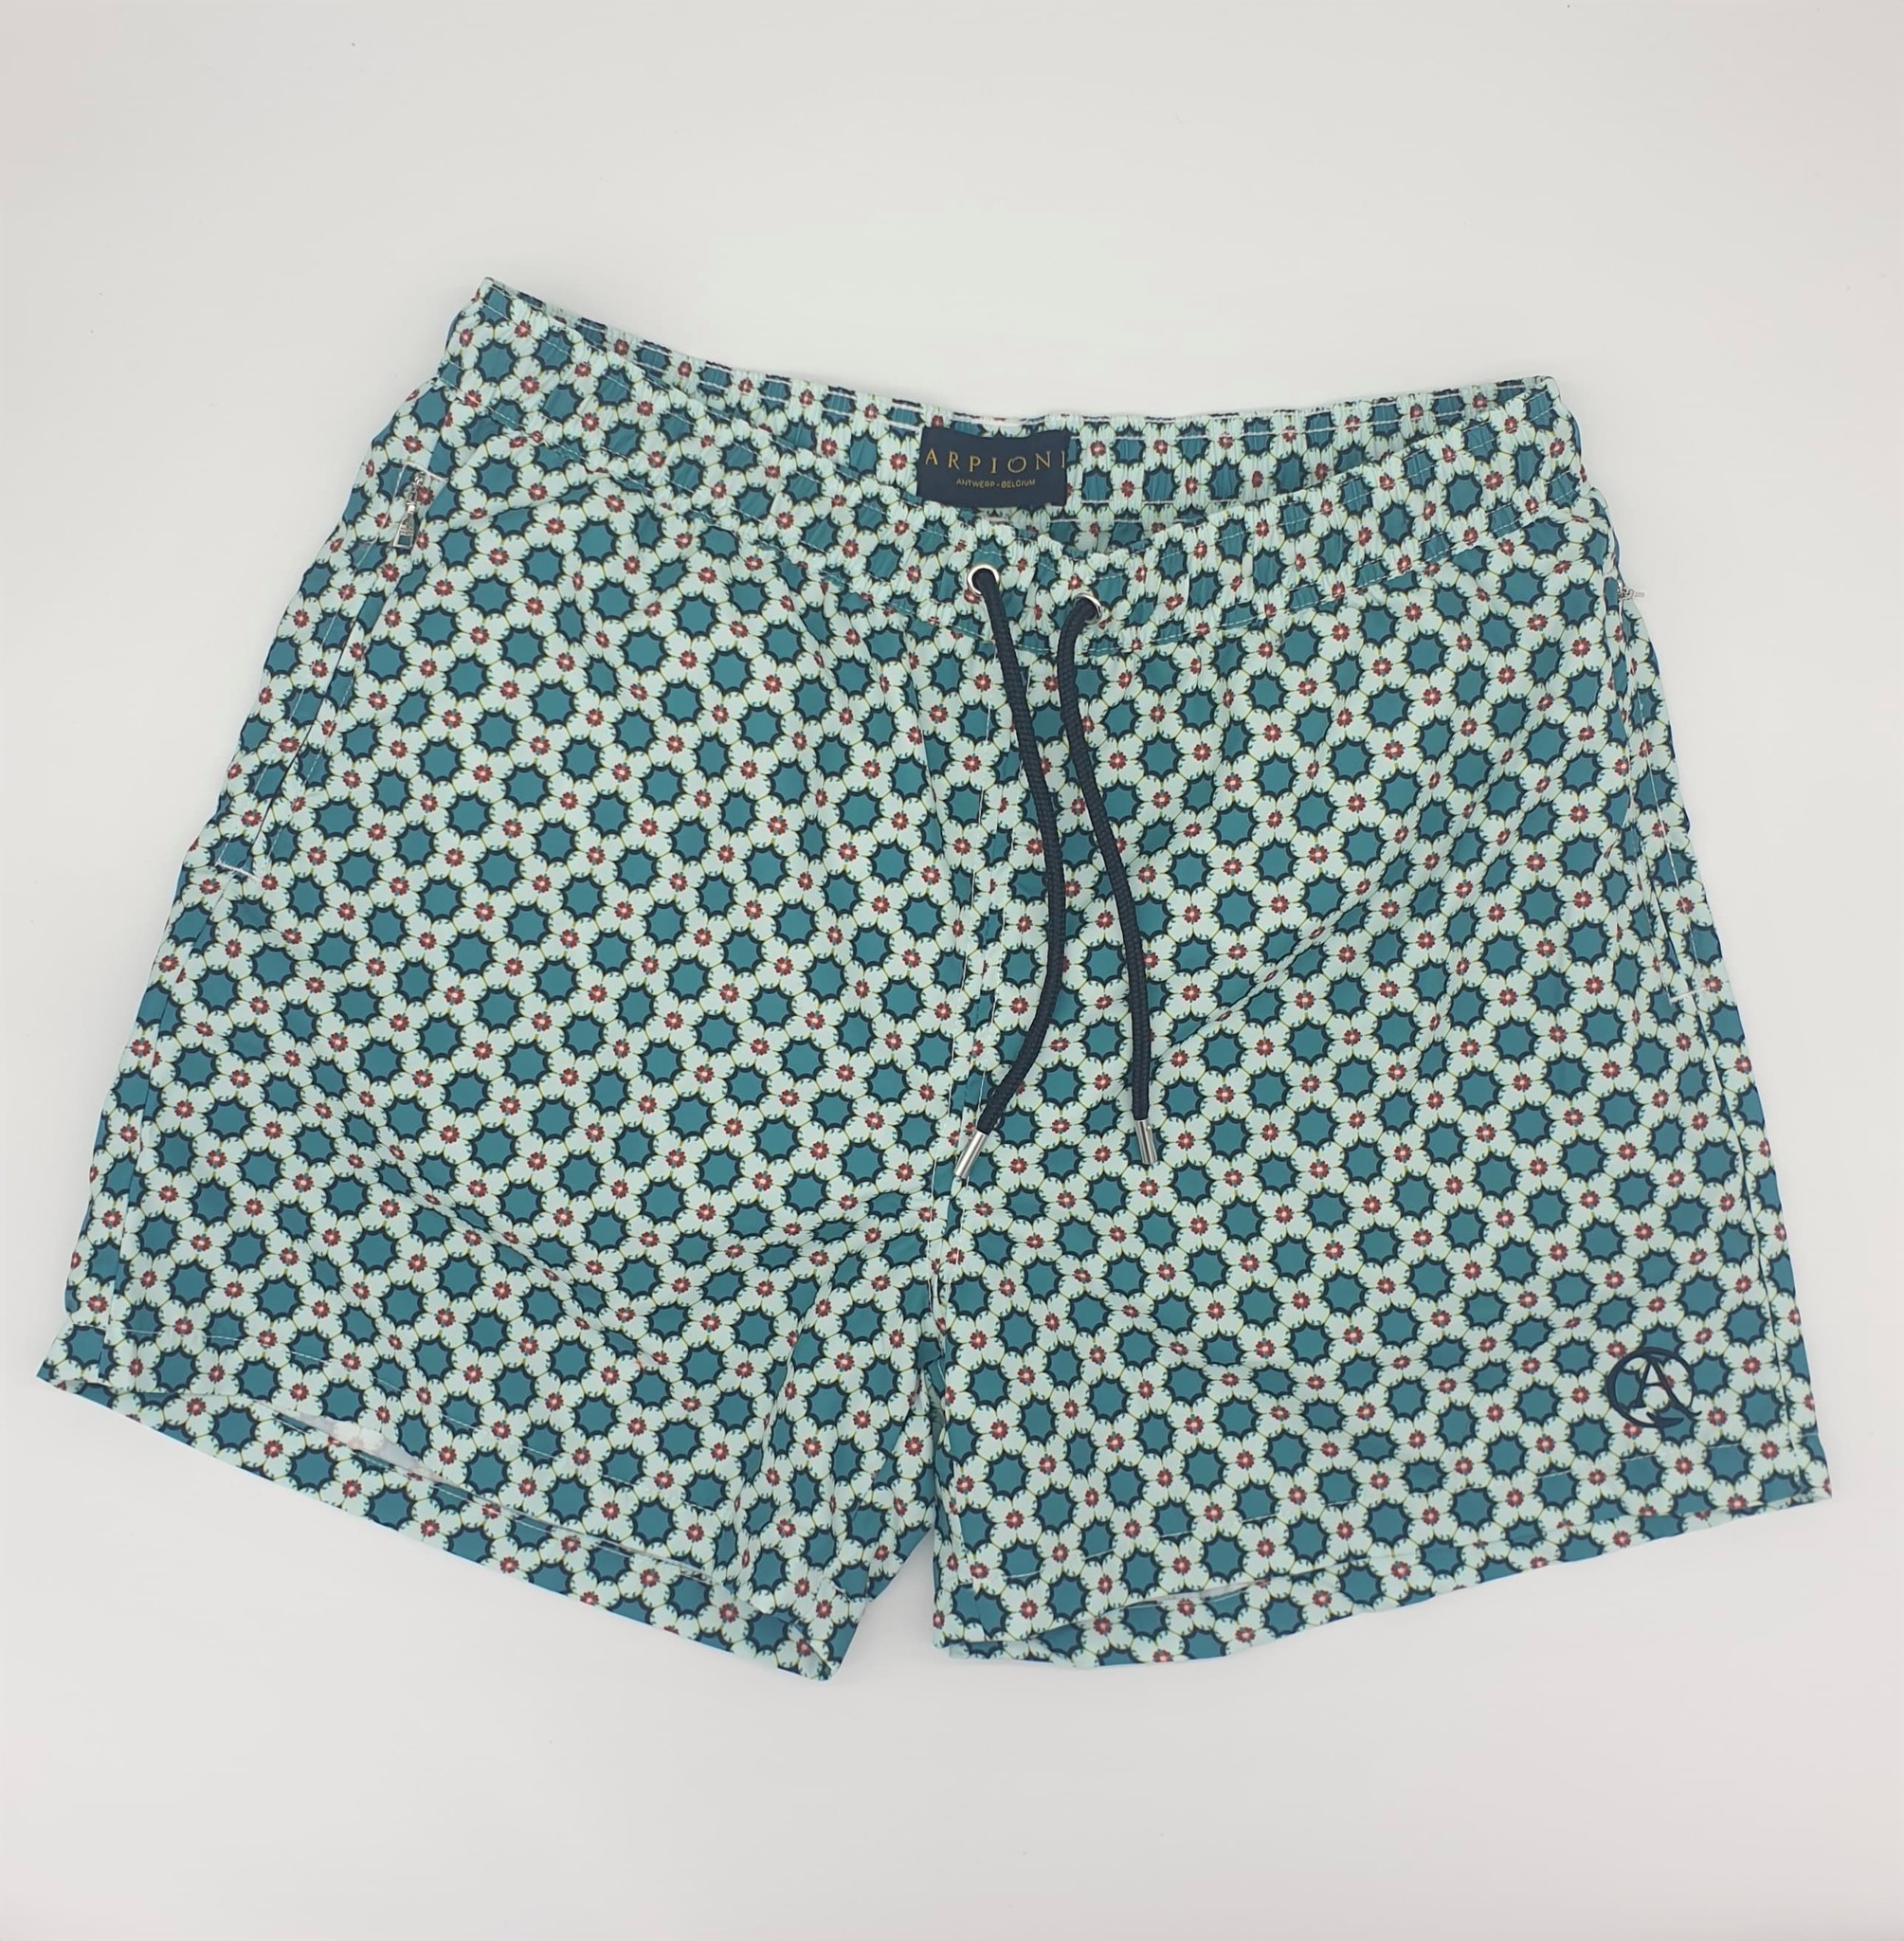 Arpione A mid-length swimshort for men